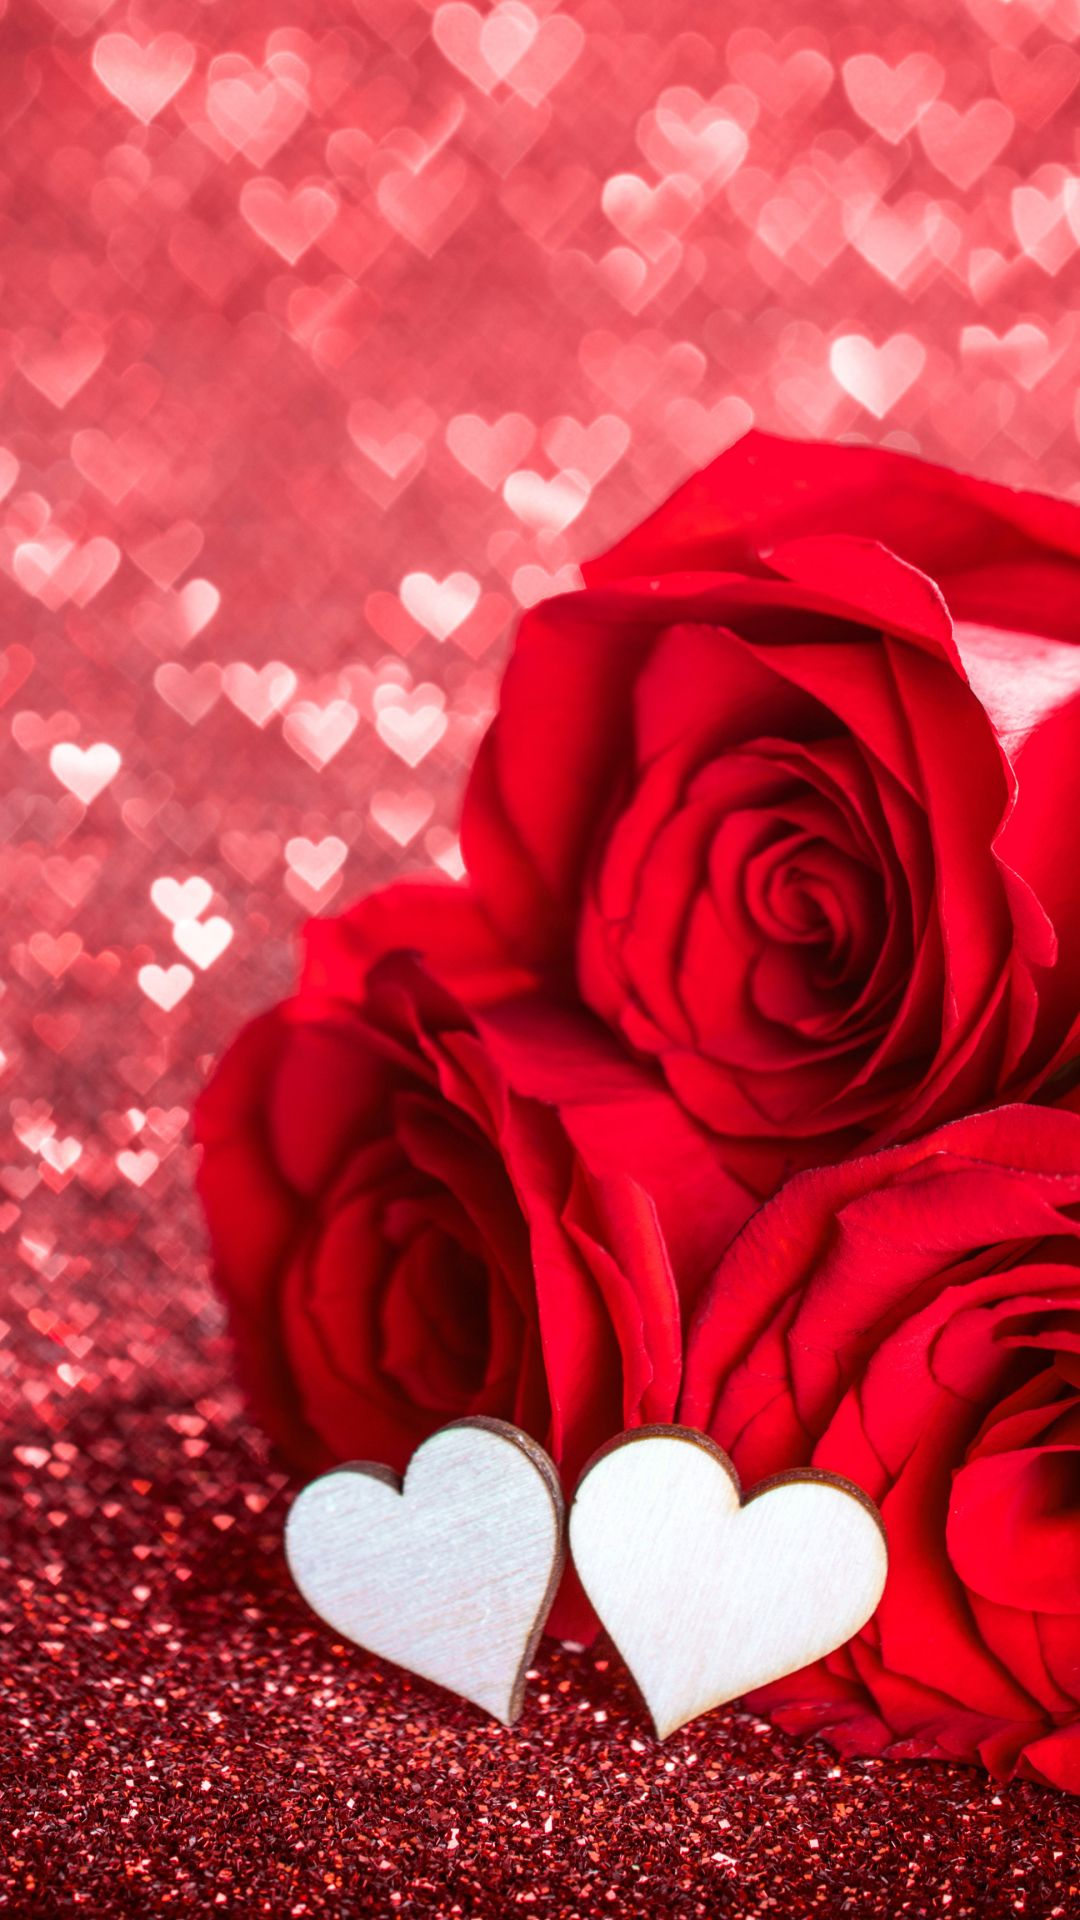 Holiday Valentine S Day Bokeh Flower Heart Shaped Love Red Flower Red Rose Romantic Rose 1080x1920 Mob Valentines Wallpaper Red Roses Wallpaper Red Wallpaper